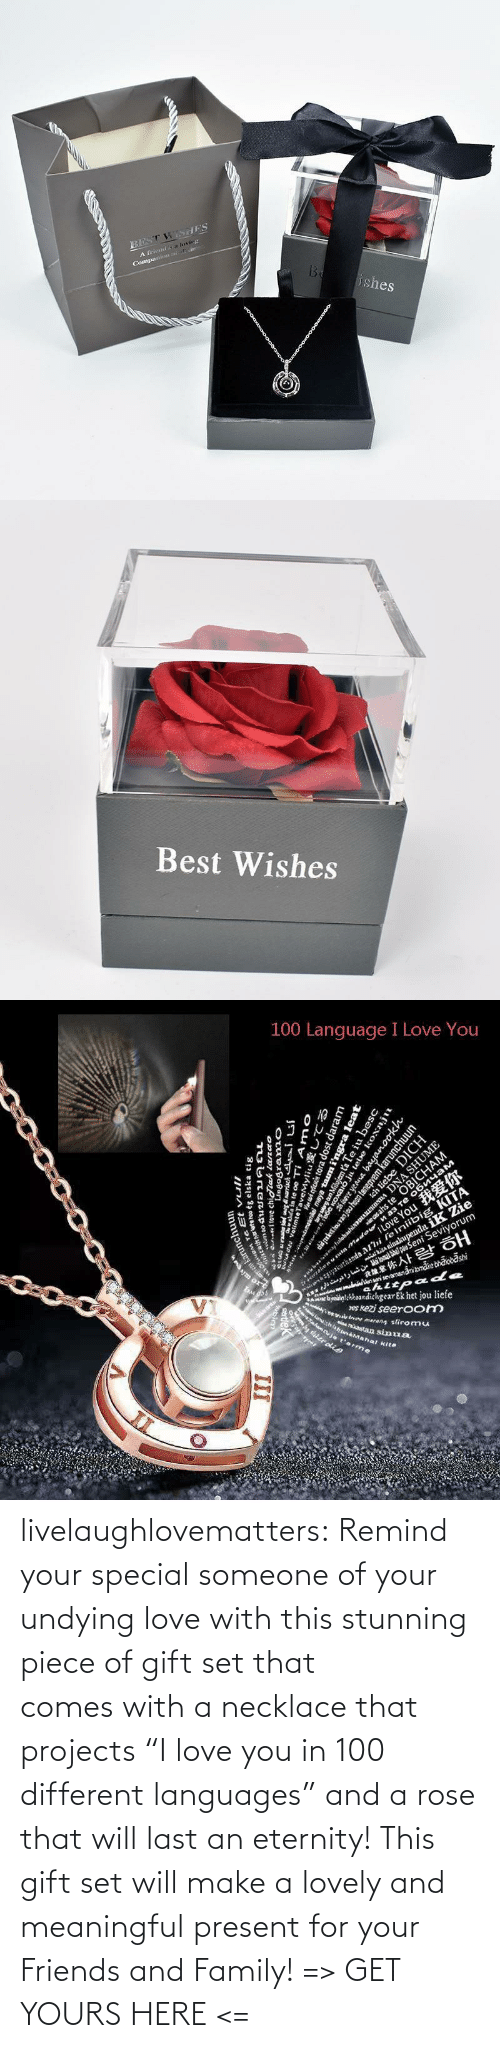 "Necklace: livelaughlovematters:  Remind your special someone of your undying love with this stunning piece of gift set that comes with a necklace that projects ""I love you in 100 different languages"" and a rose that will last an eternity! This gift set will make a lovely and meaningful present for your Friends and Family! => GET YOURS HERE <="